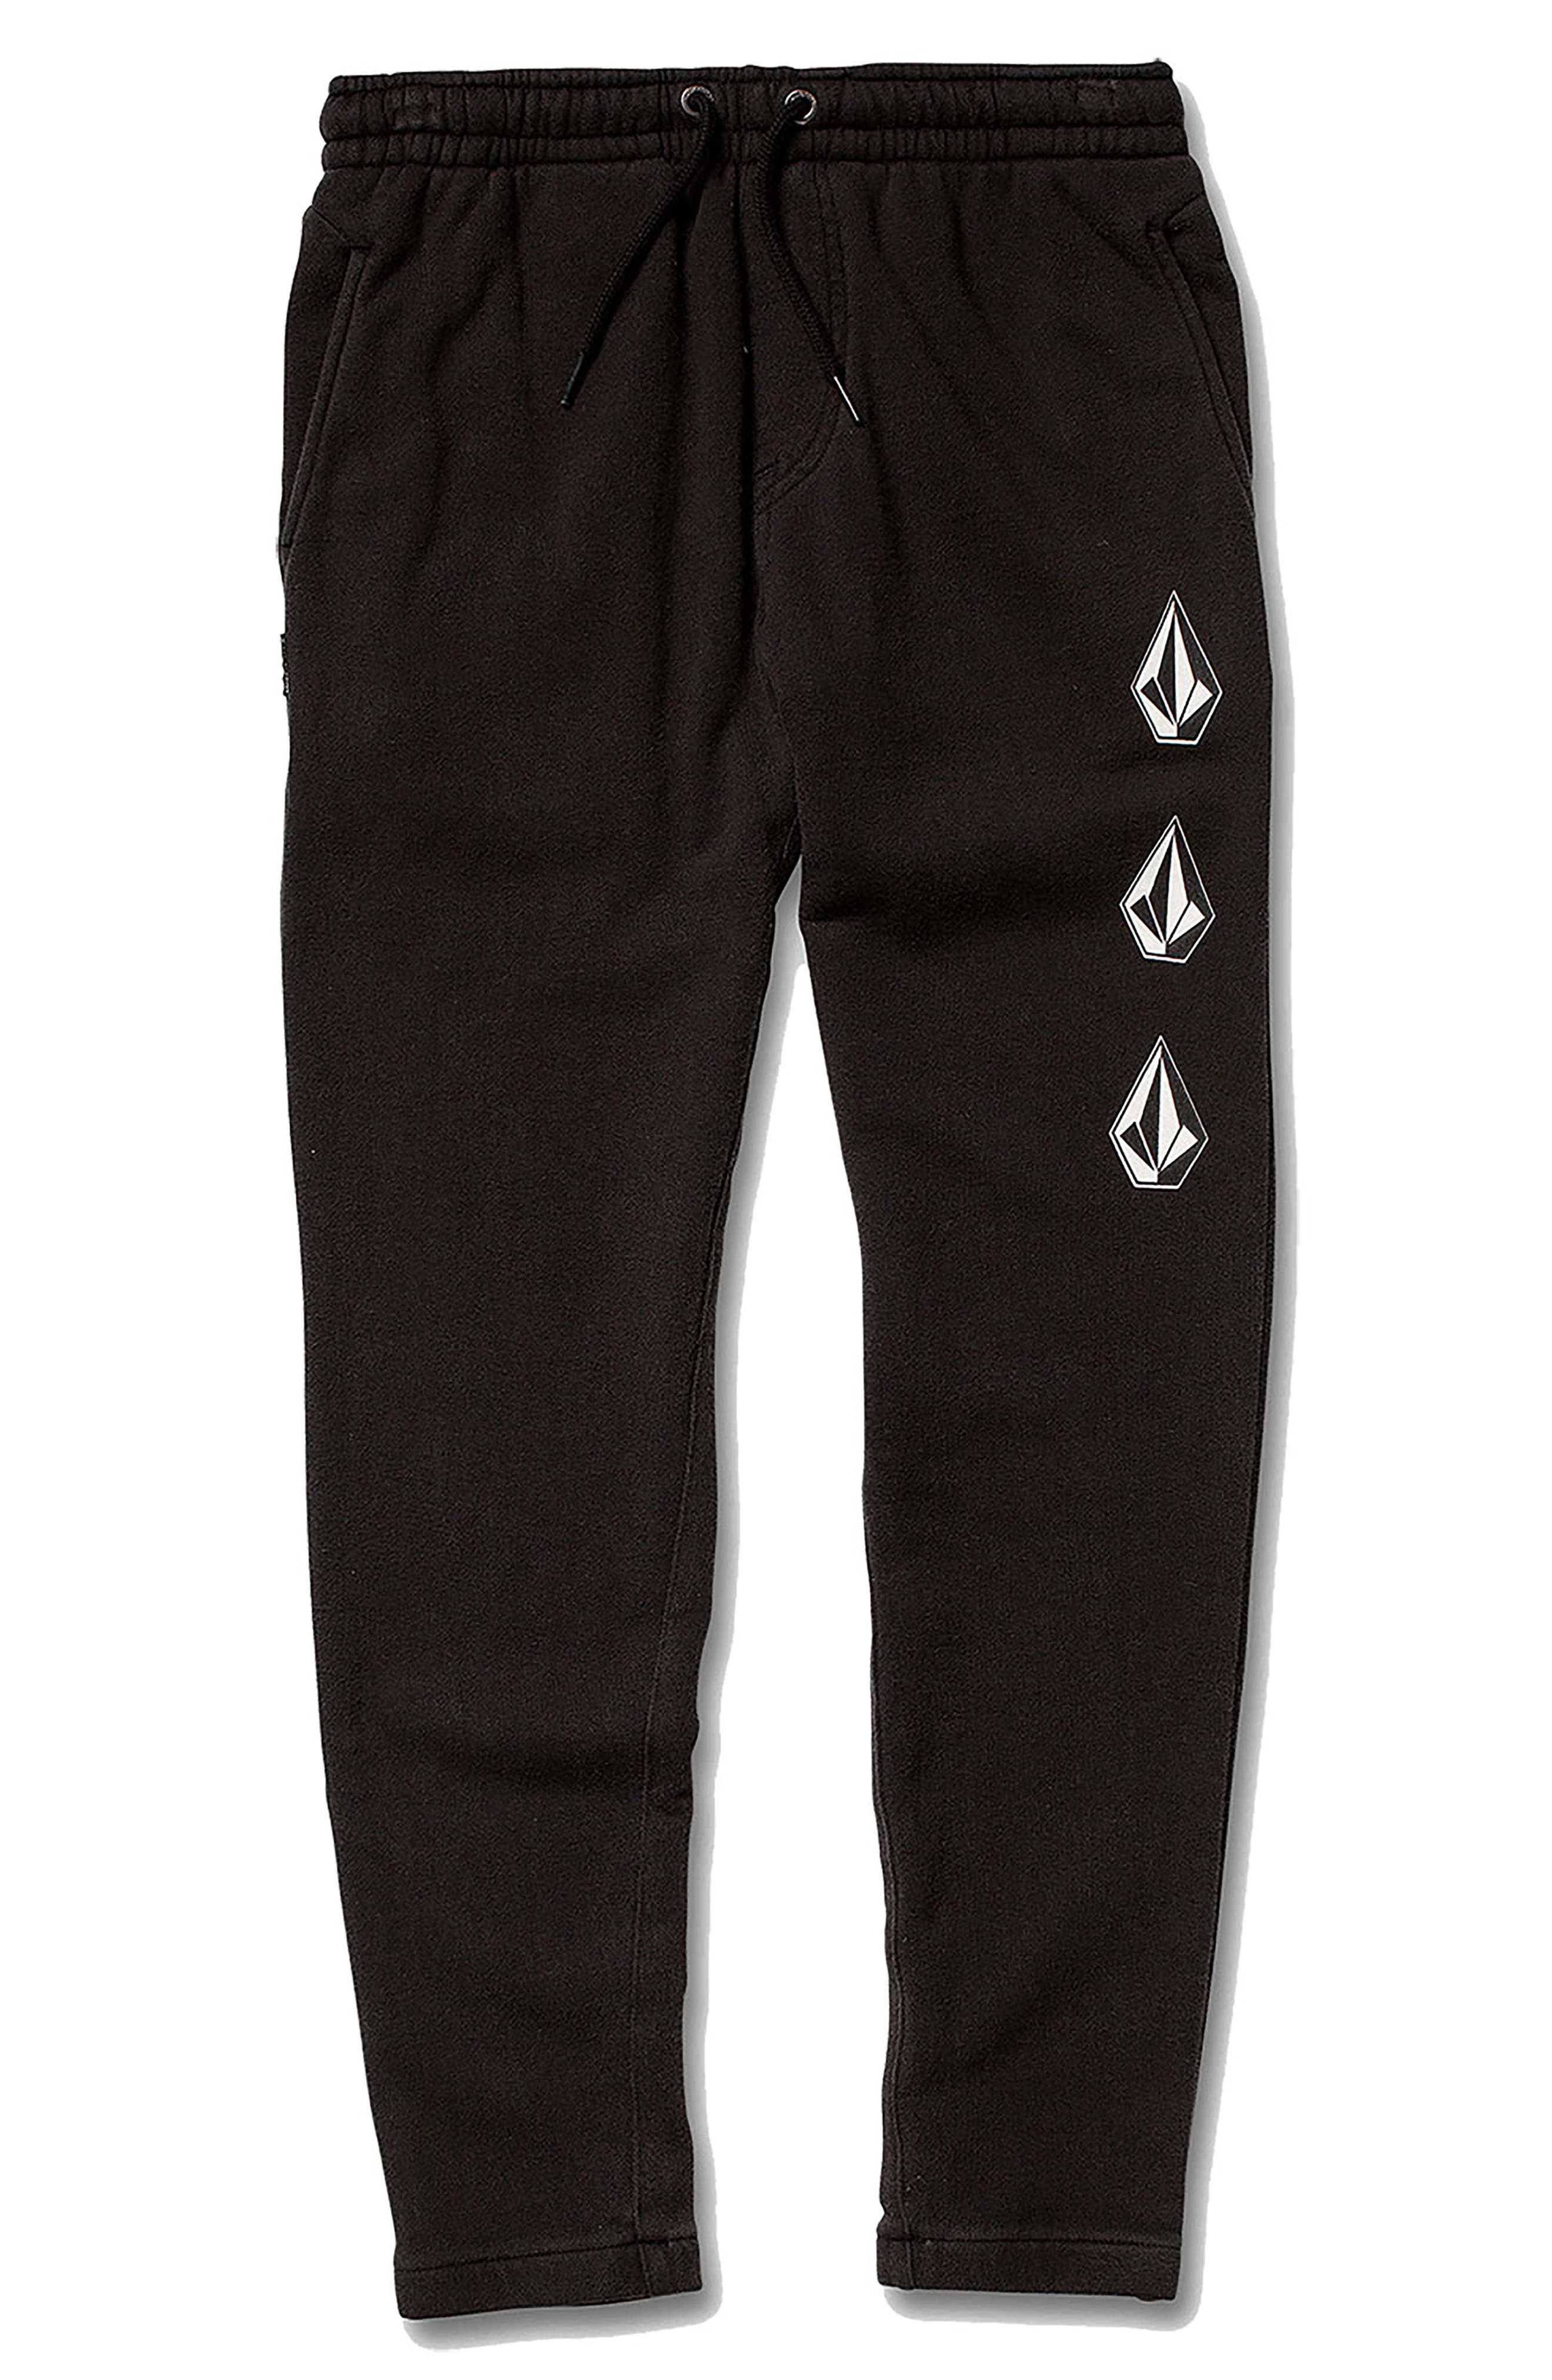 Deadly Stones Sweatpants,                         Main,                         color, BLACK